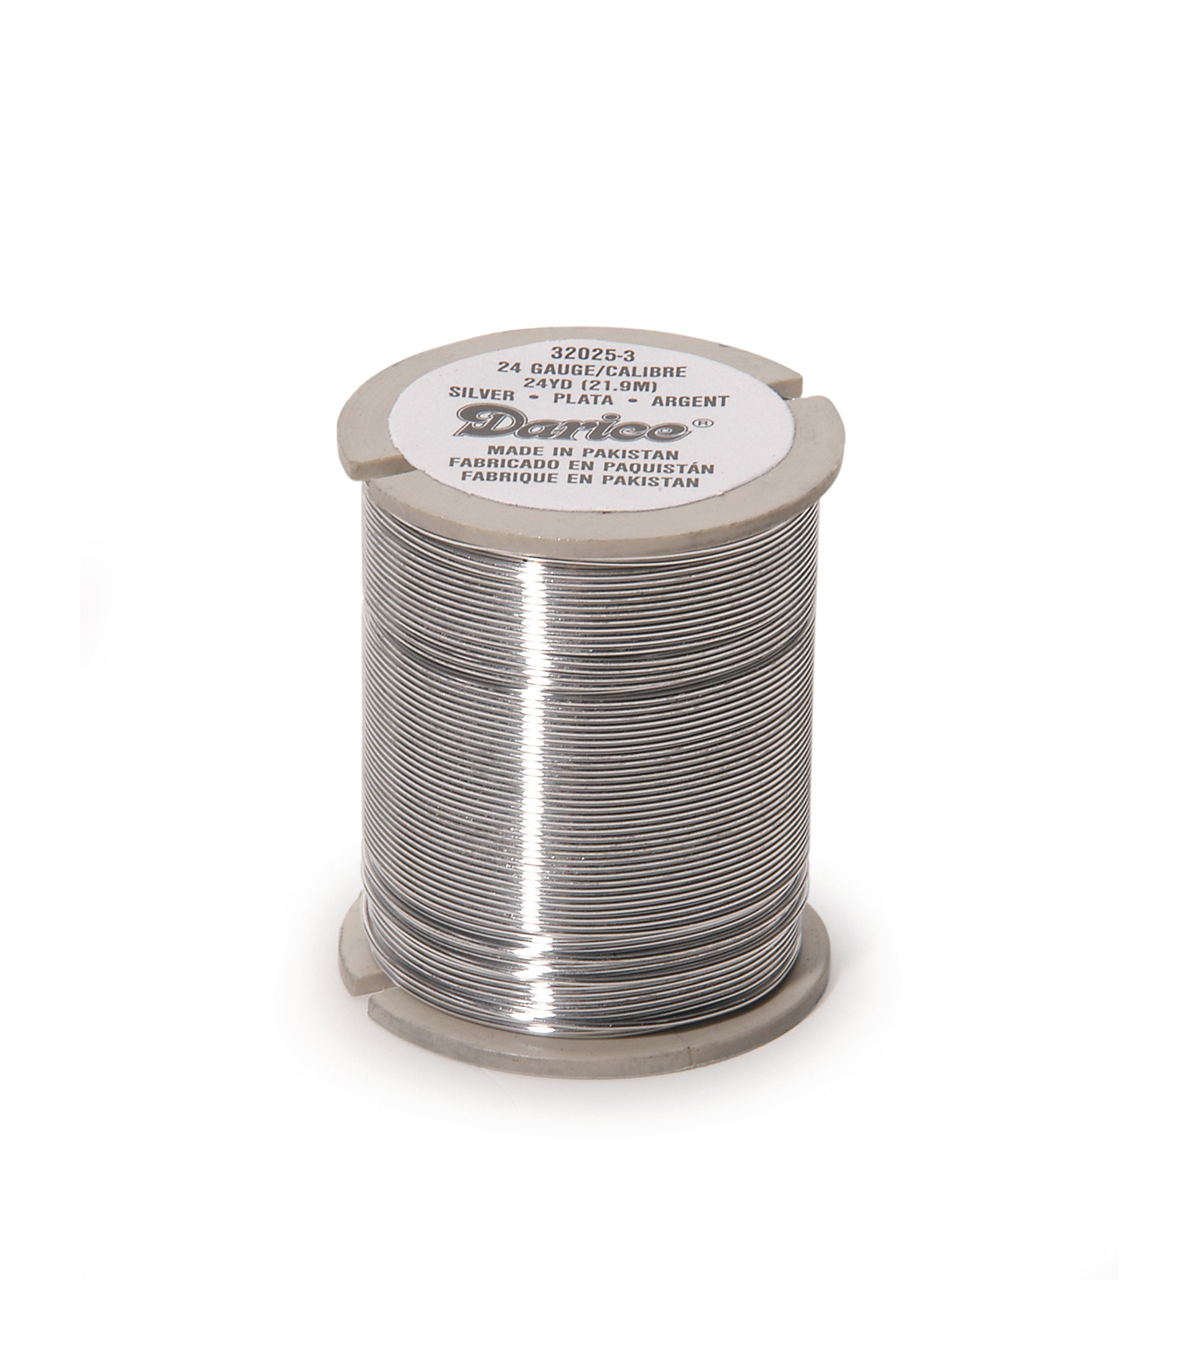 Bead Wire Slvr 24G/24 Yds